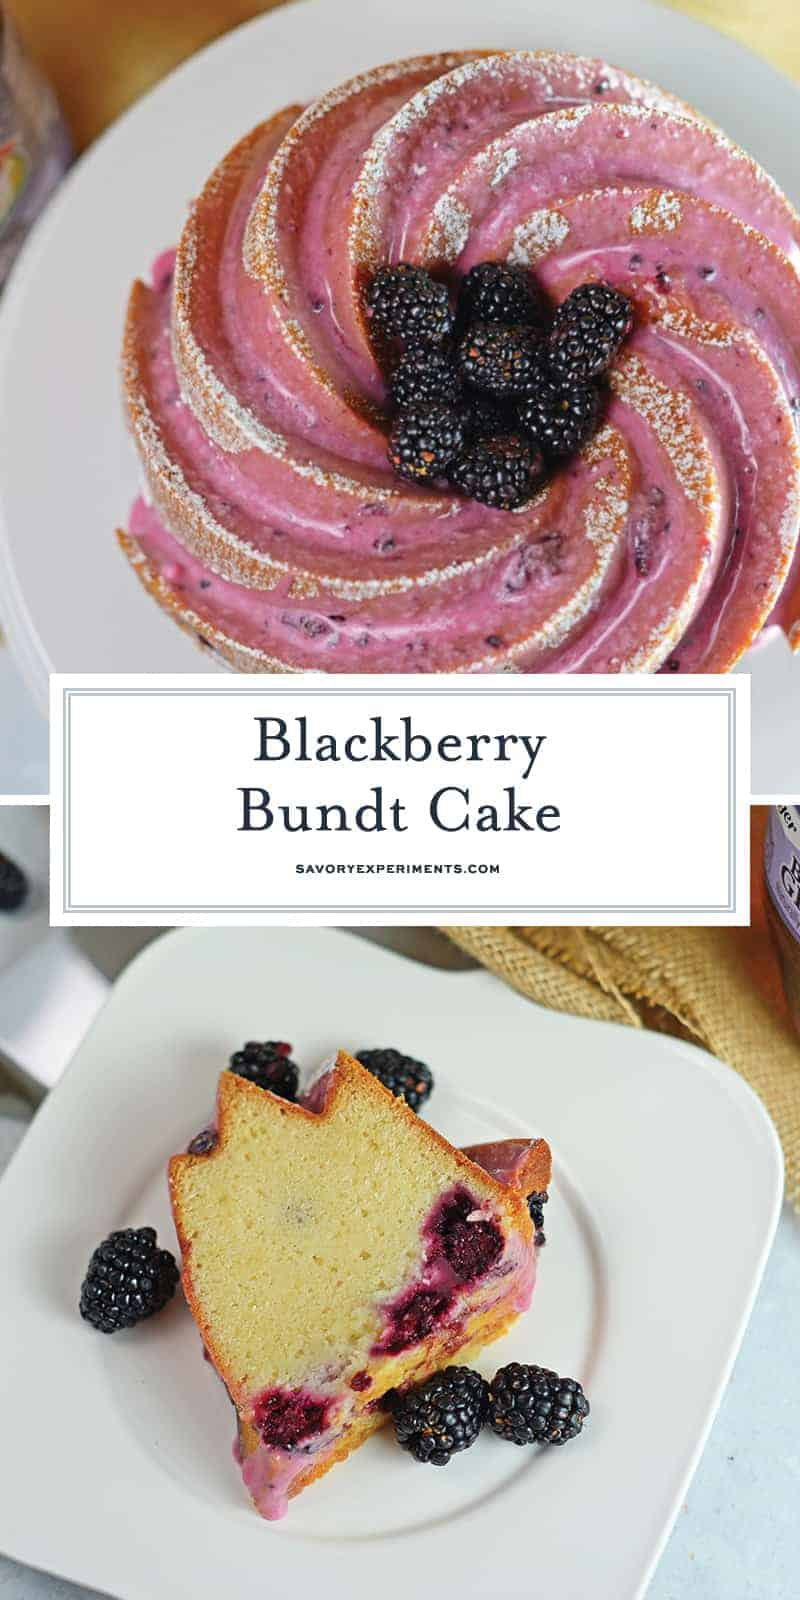 Blackberry Bundt Cake is a pound cake base using ginger ale and fresh blackberries for color, flavor and fluffiness. Top with a powdered sugar blackberry glaze for this heavenly dessert recipe. #bundtcakerecipe #blackberryrecipes www.savoryexperiments.com